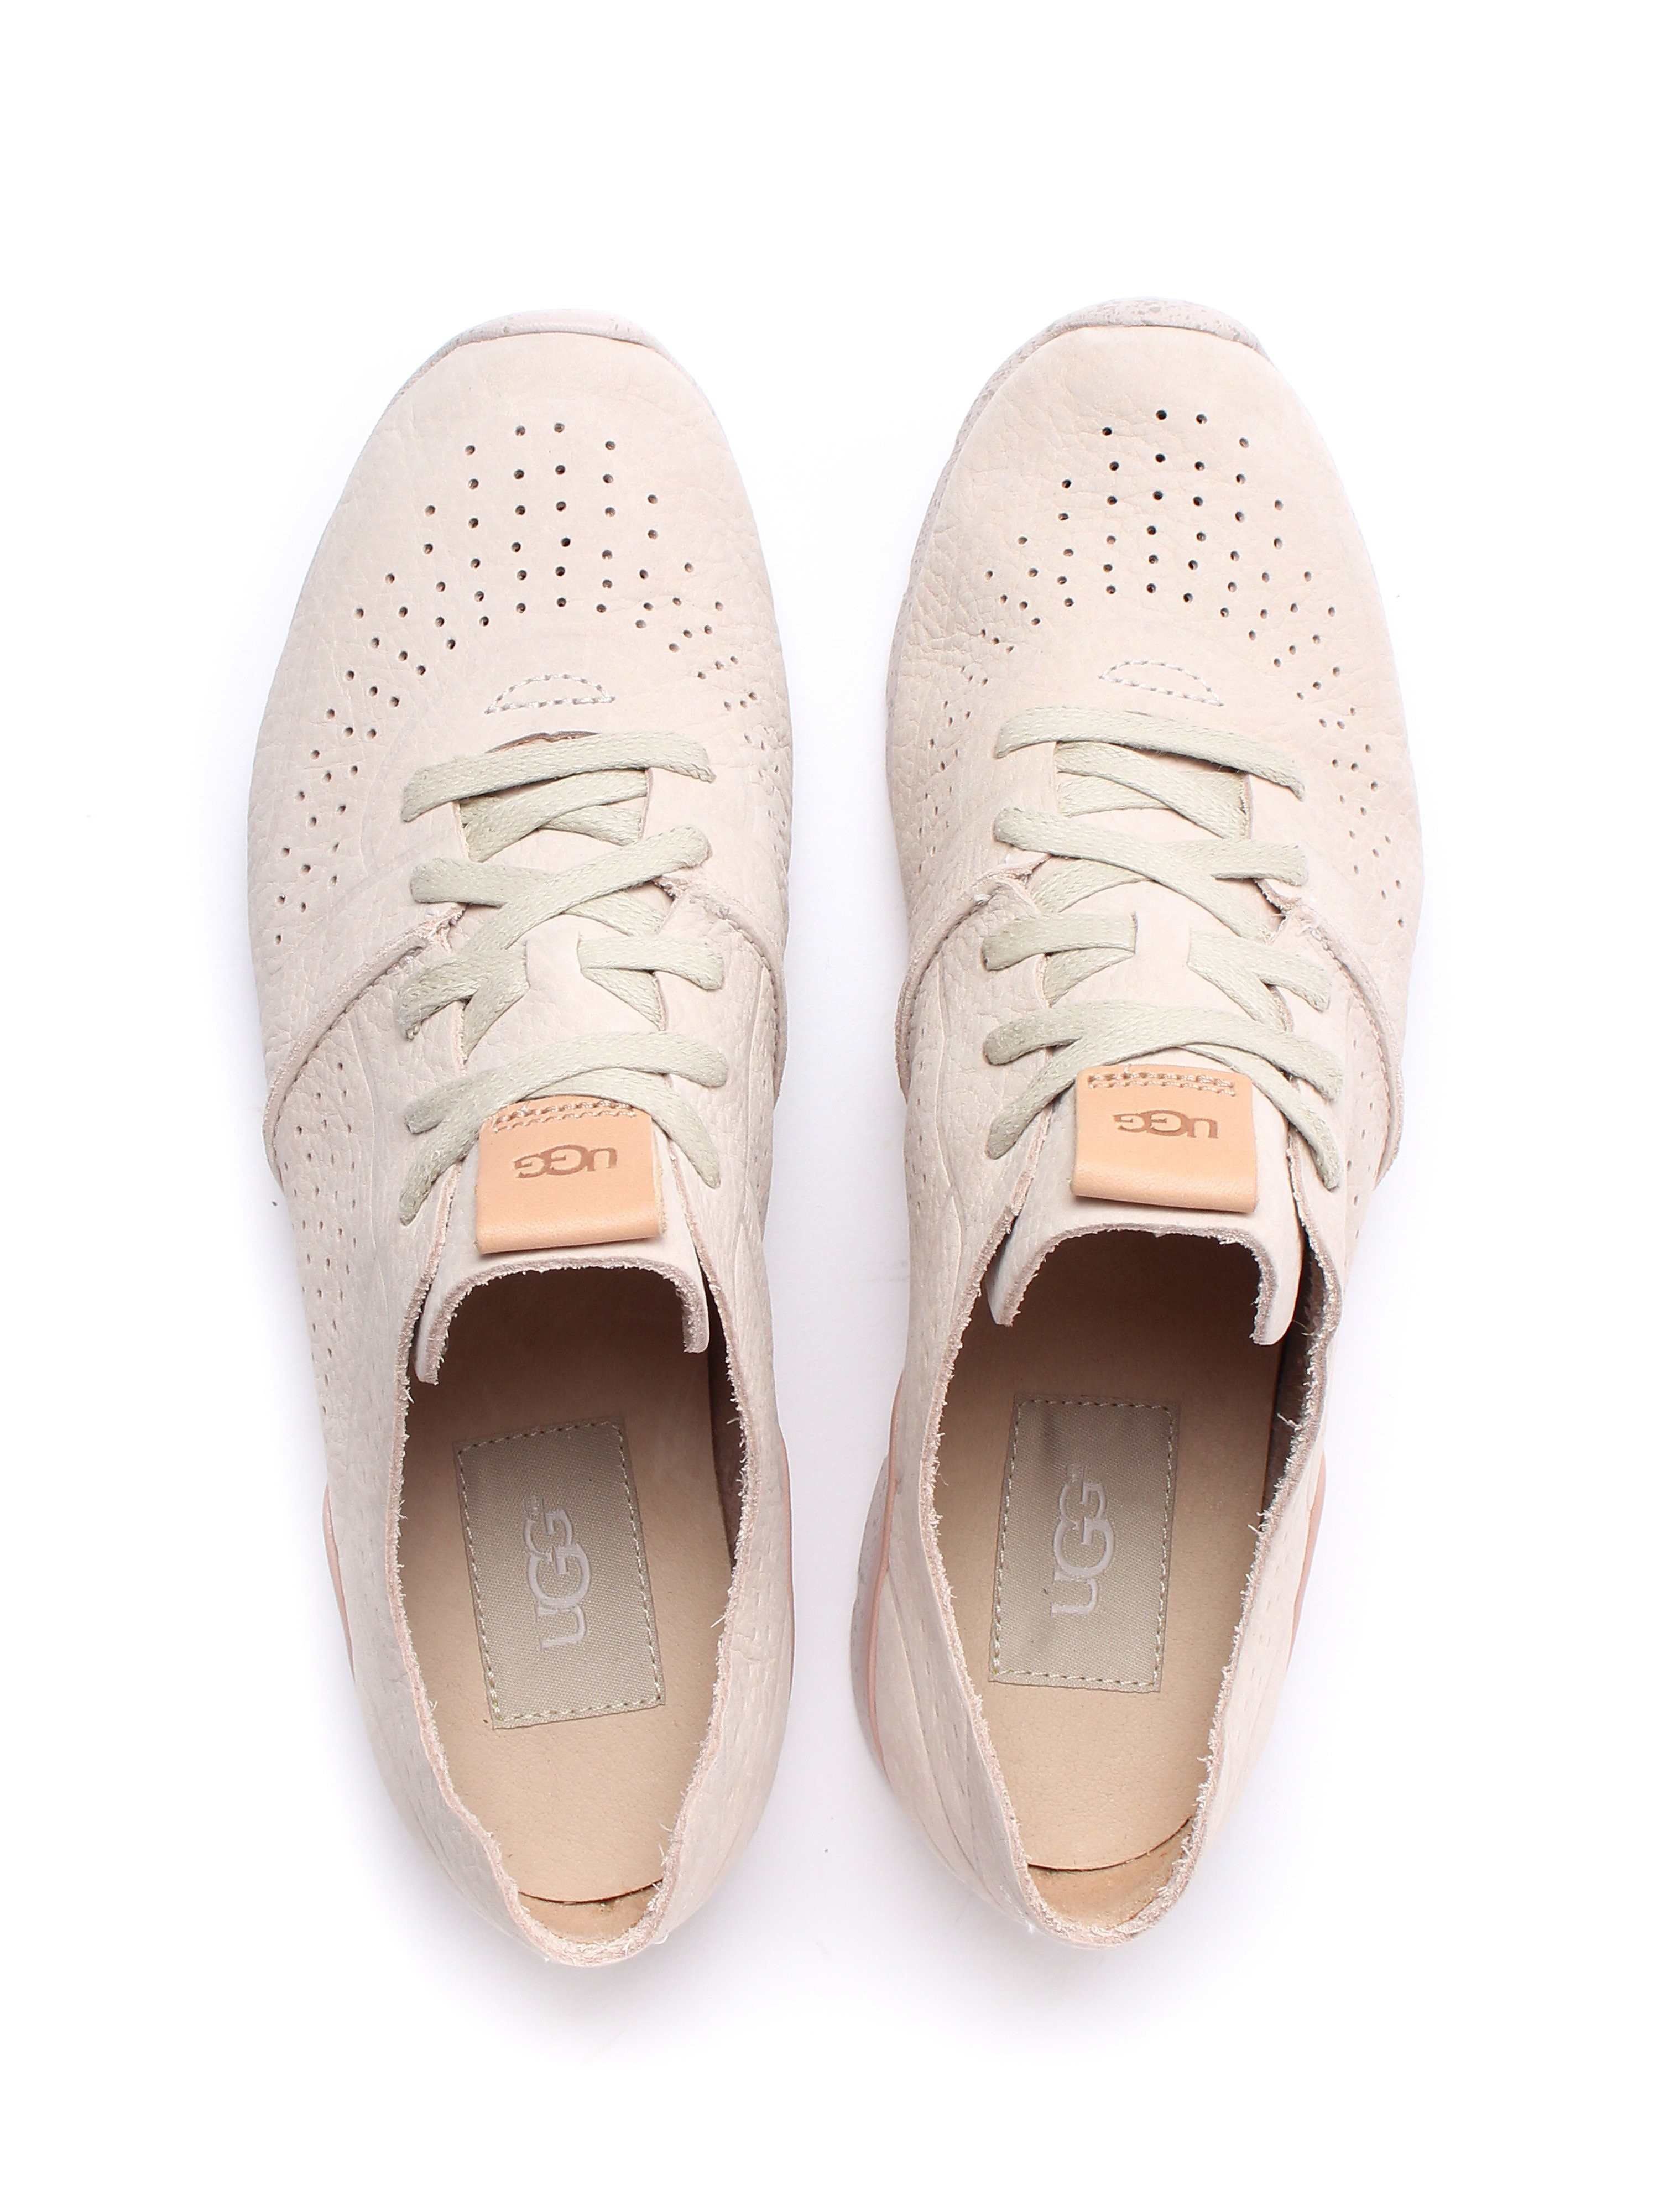 Ugg Women's Tye Textured Leather Trainers - Ceramic